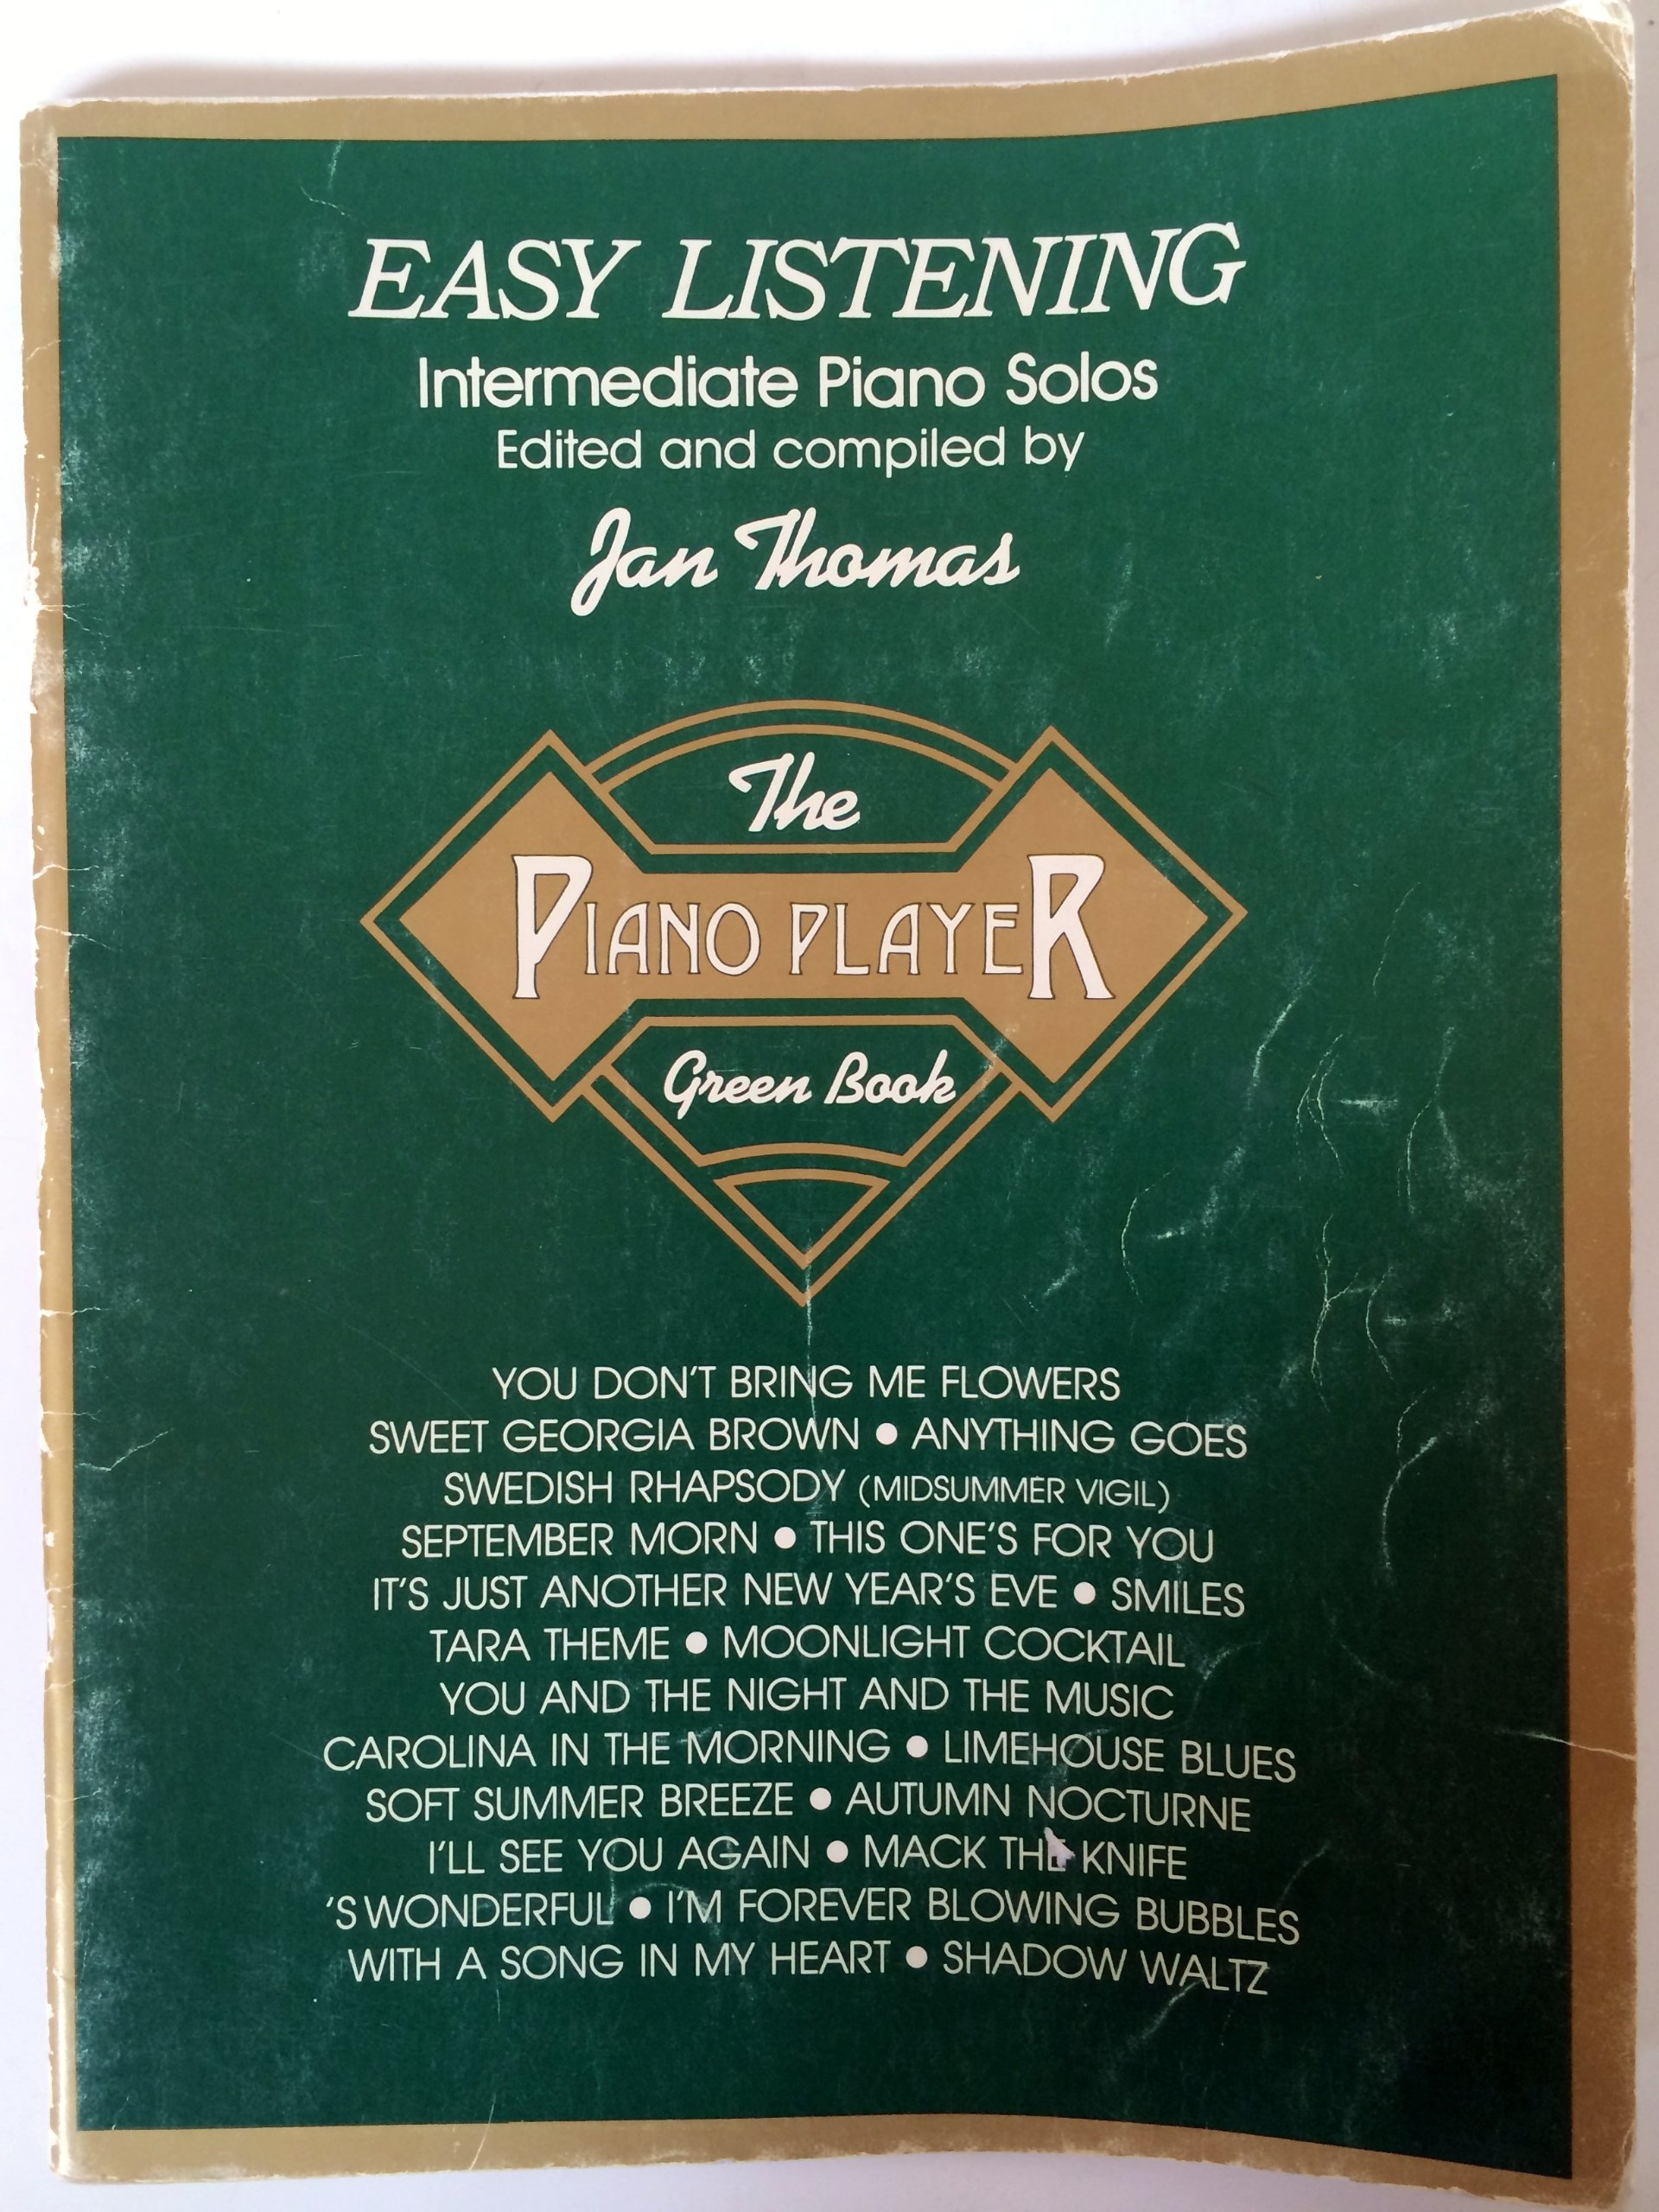 Easy Listening Intermediate Piano Solos - The Piano Player